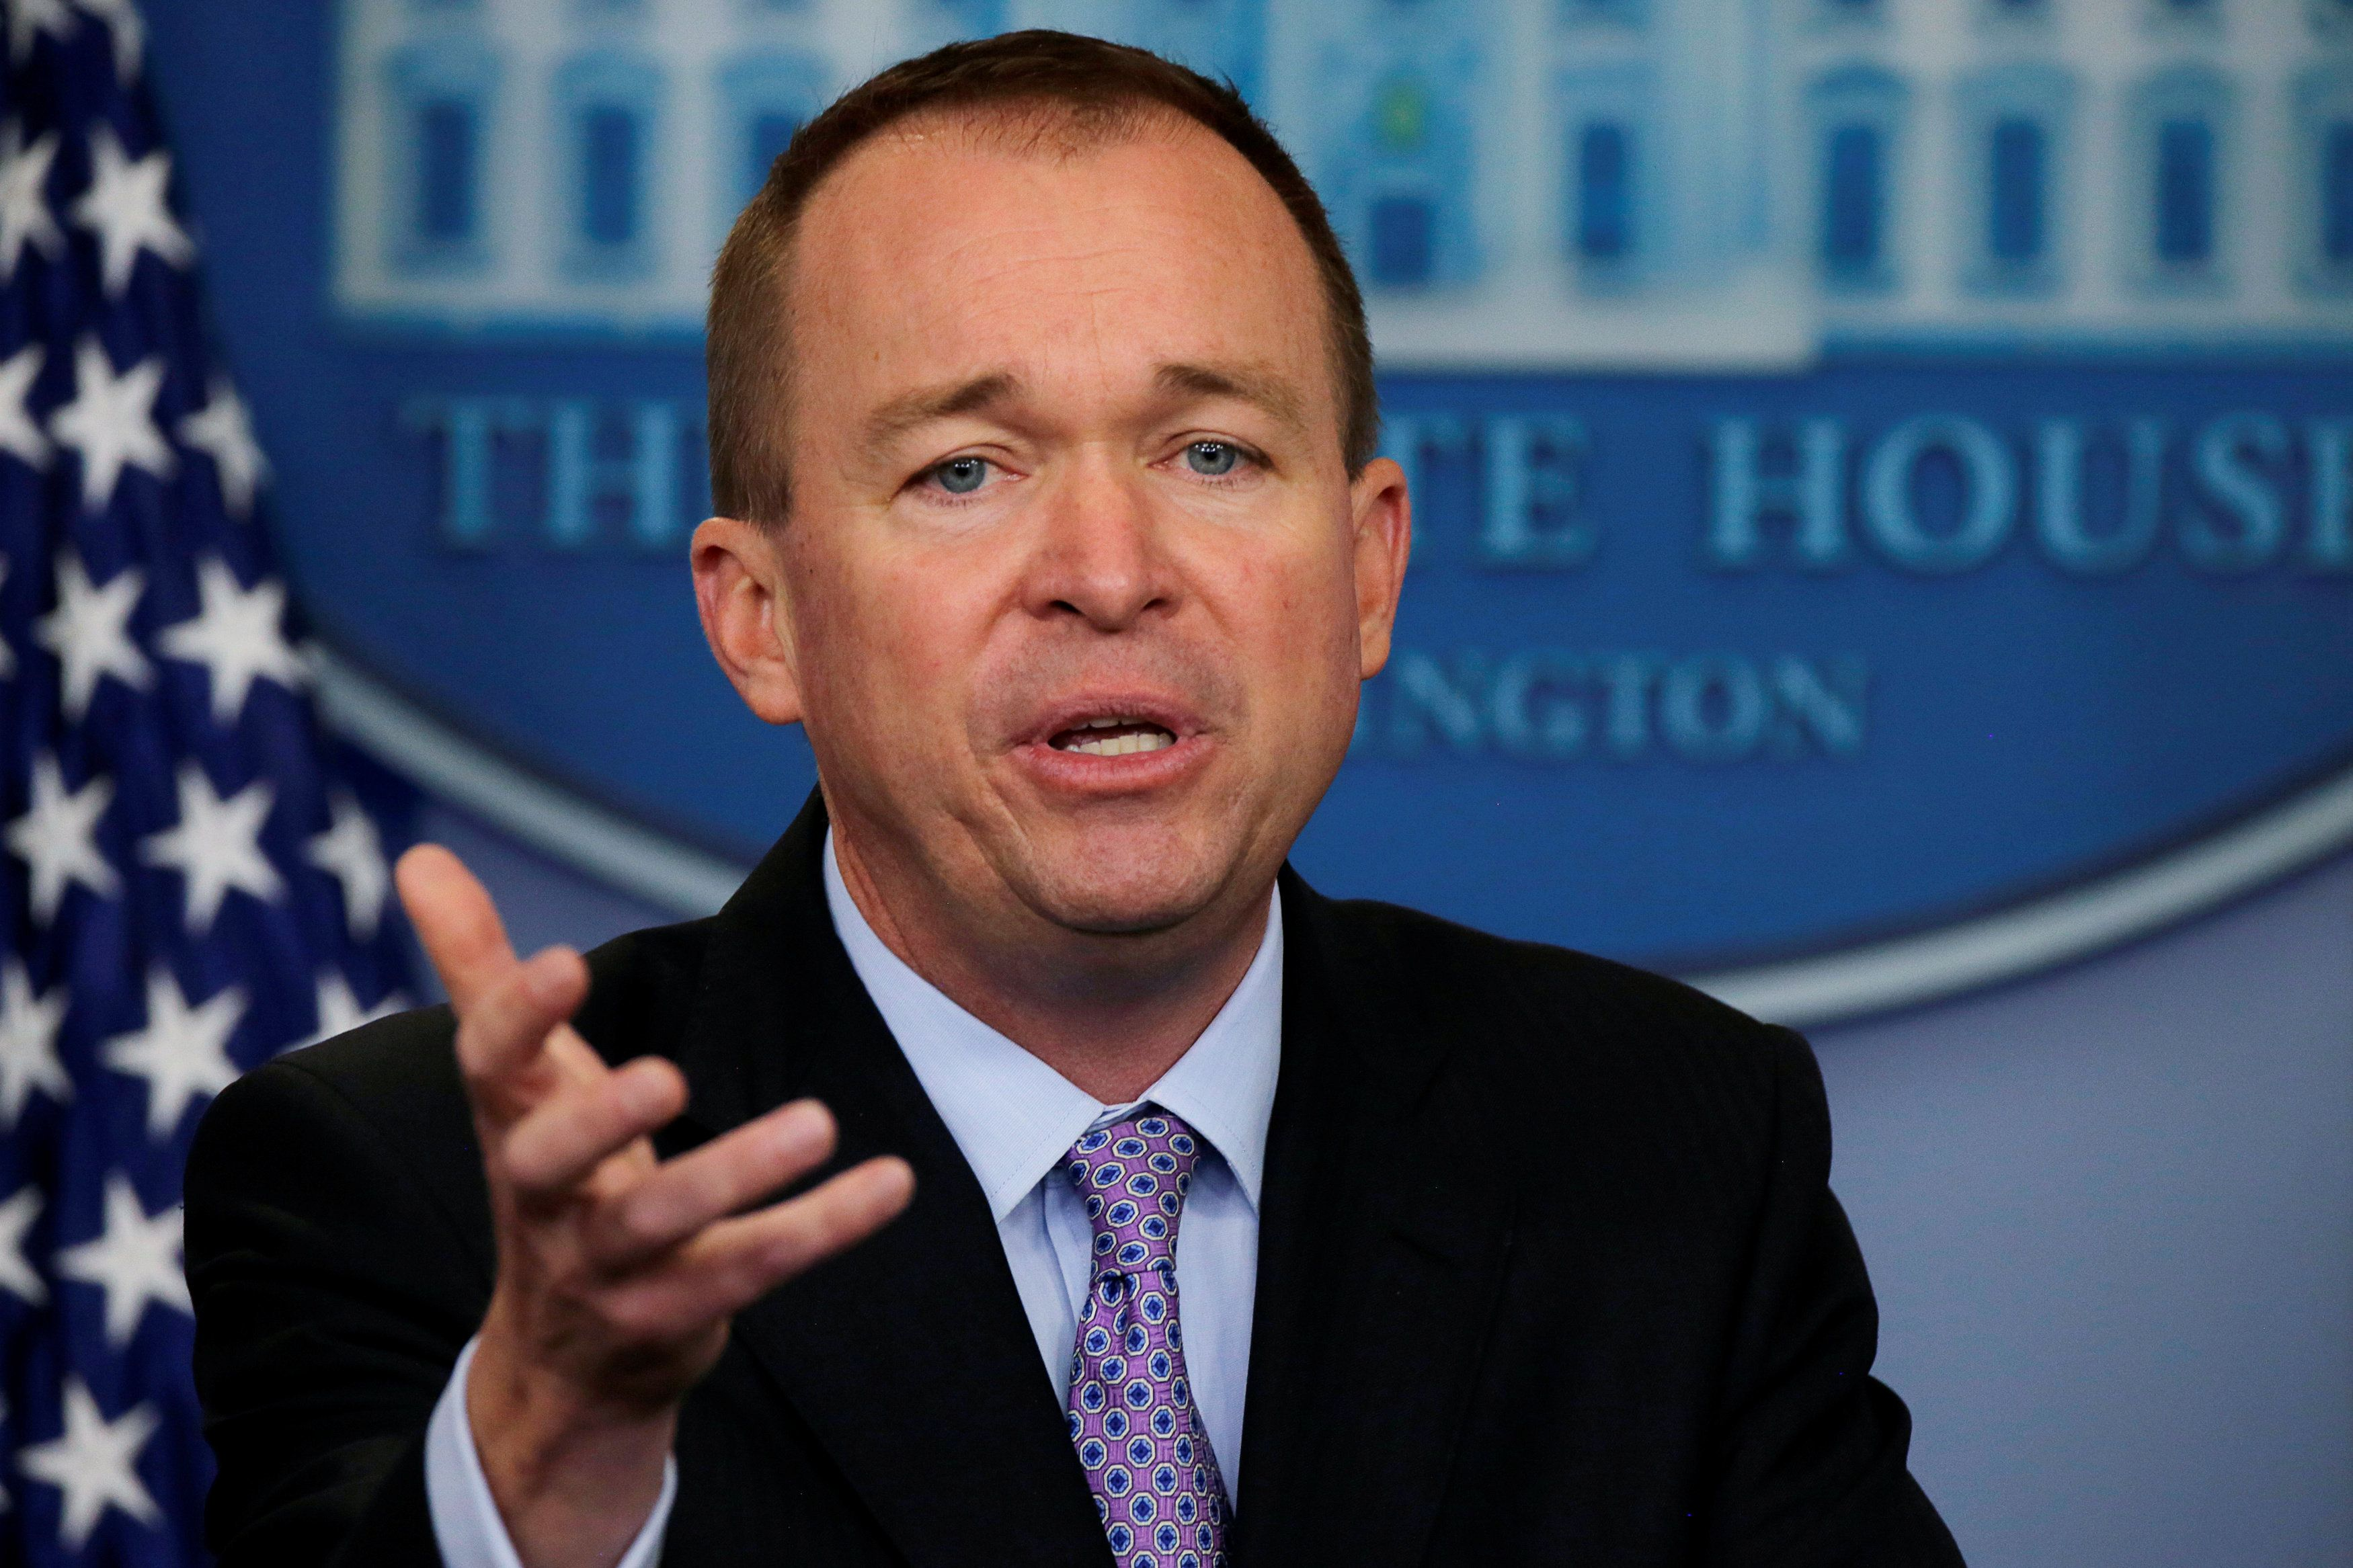 Office of Management and Budget Director Mick Mulvaney holds a briefing on President Trump's FY2018 proposed budget in the press briefing room at the White House in Washington, U.S., May 23, 2017. REUTERS/Jim Bourg